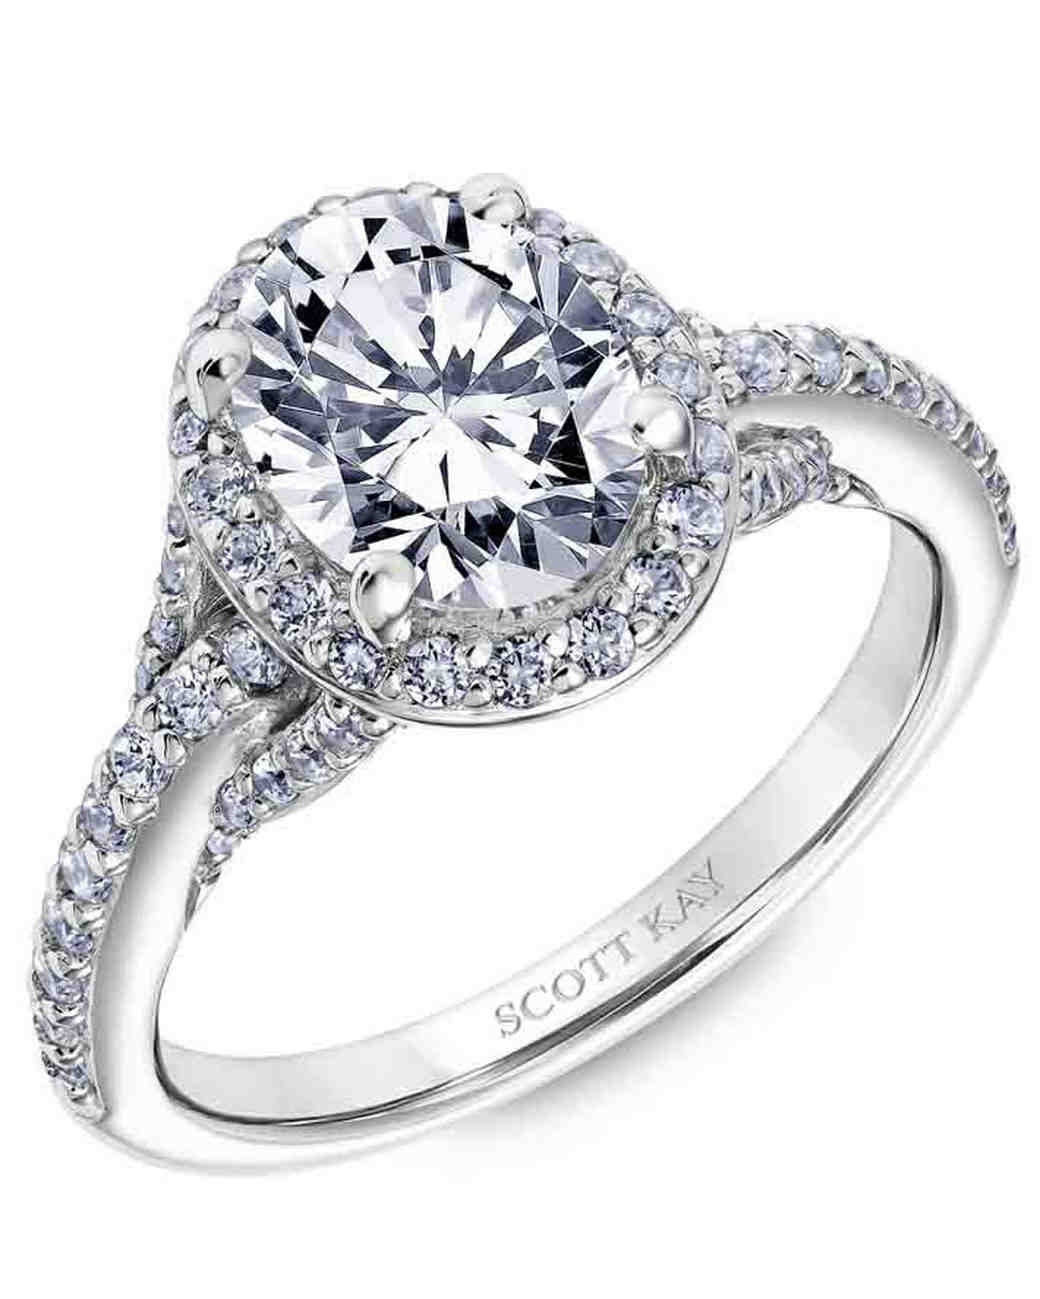 Oval Engagement Rings for the BridetoBe Martha Stewart Weddings